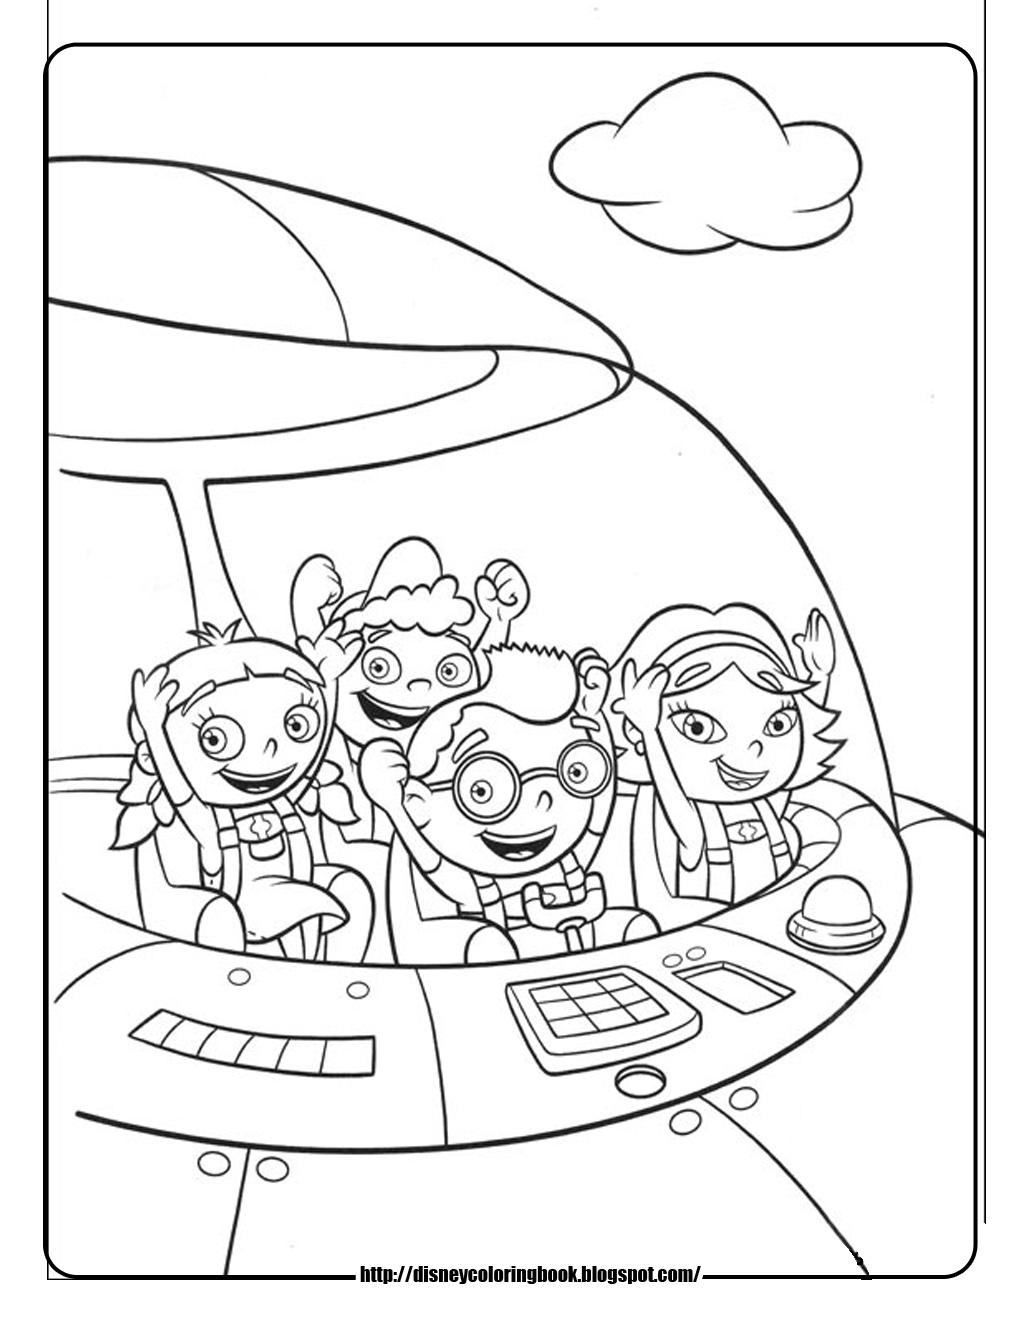 Little Einsteins 4 Free Disney Coloring Sheets